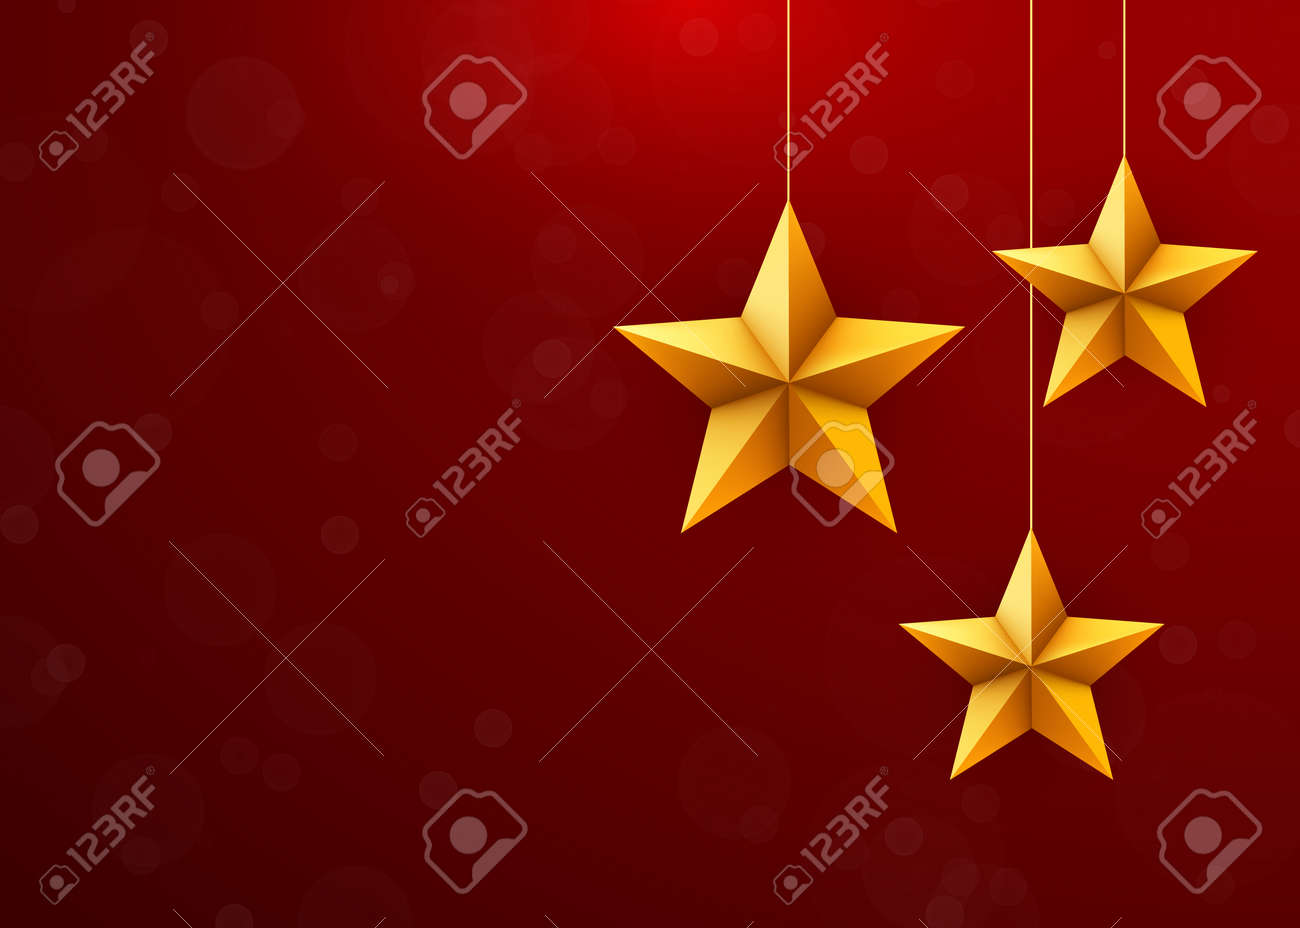 christmas festive background with christmas stars decorations vector illustration stock illustration 109487950